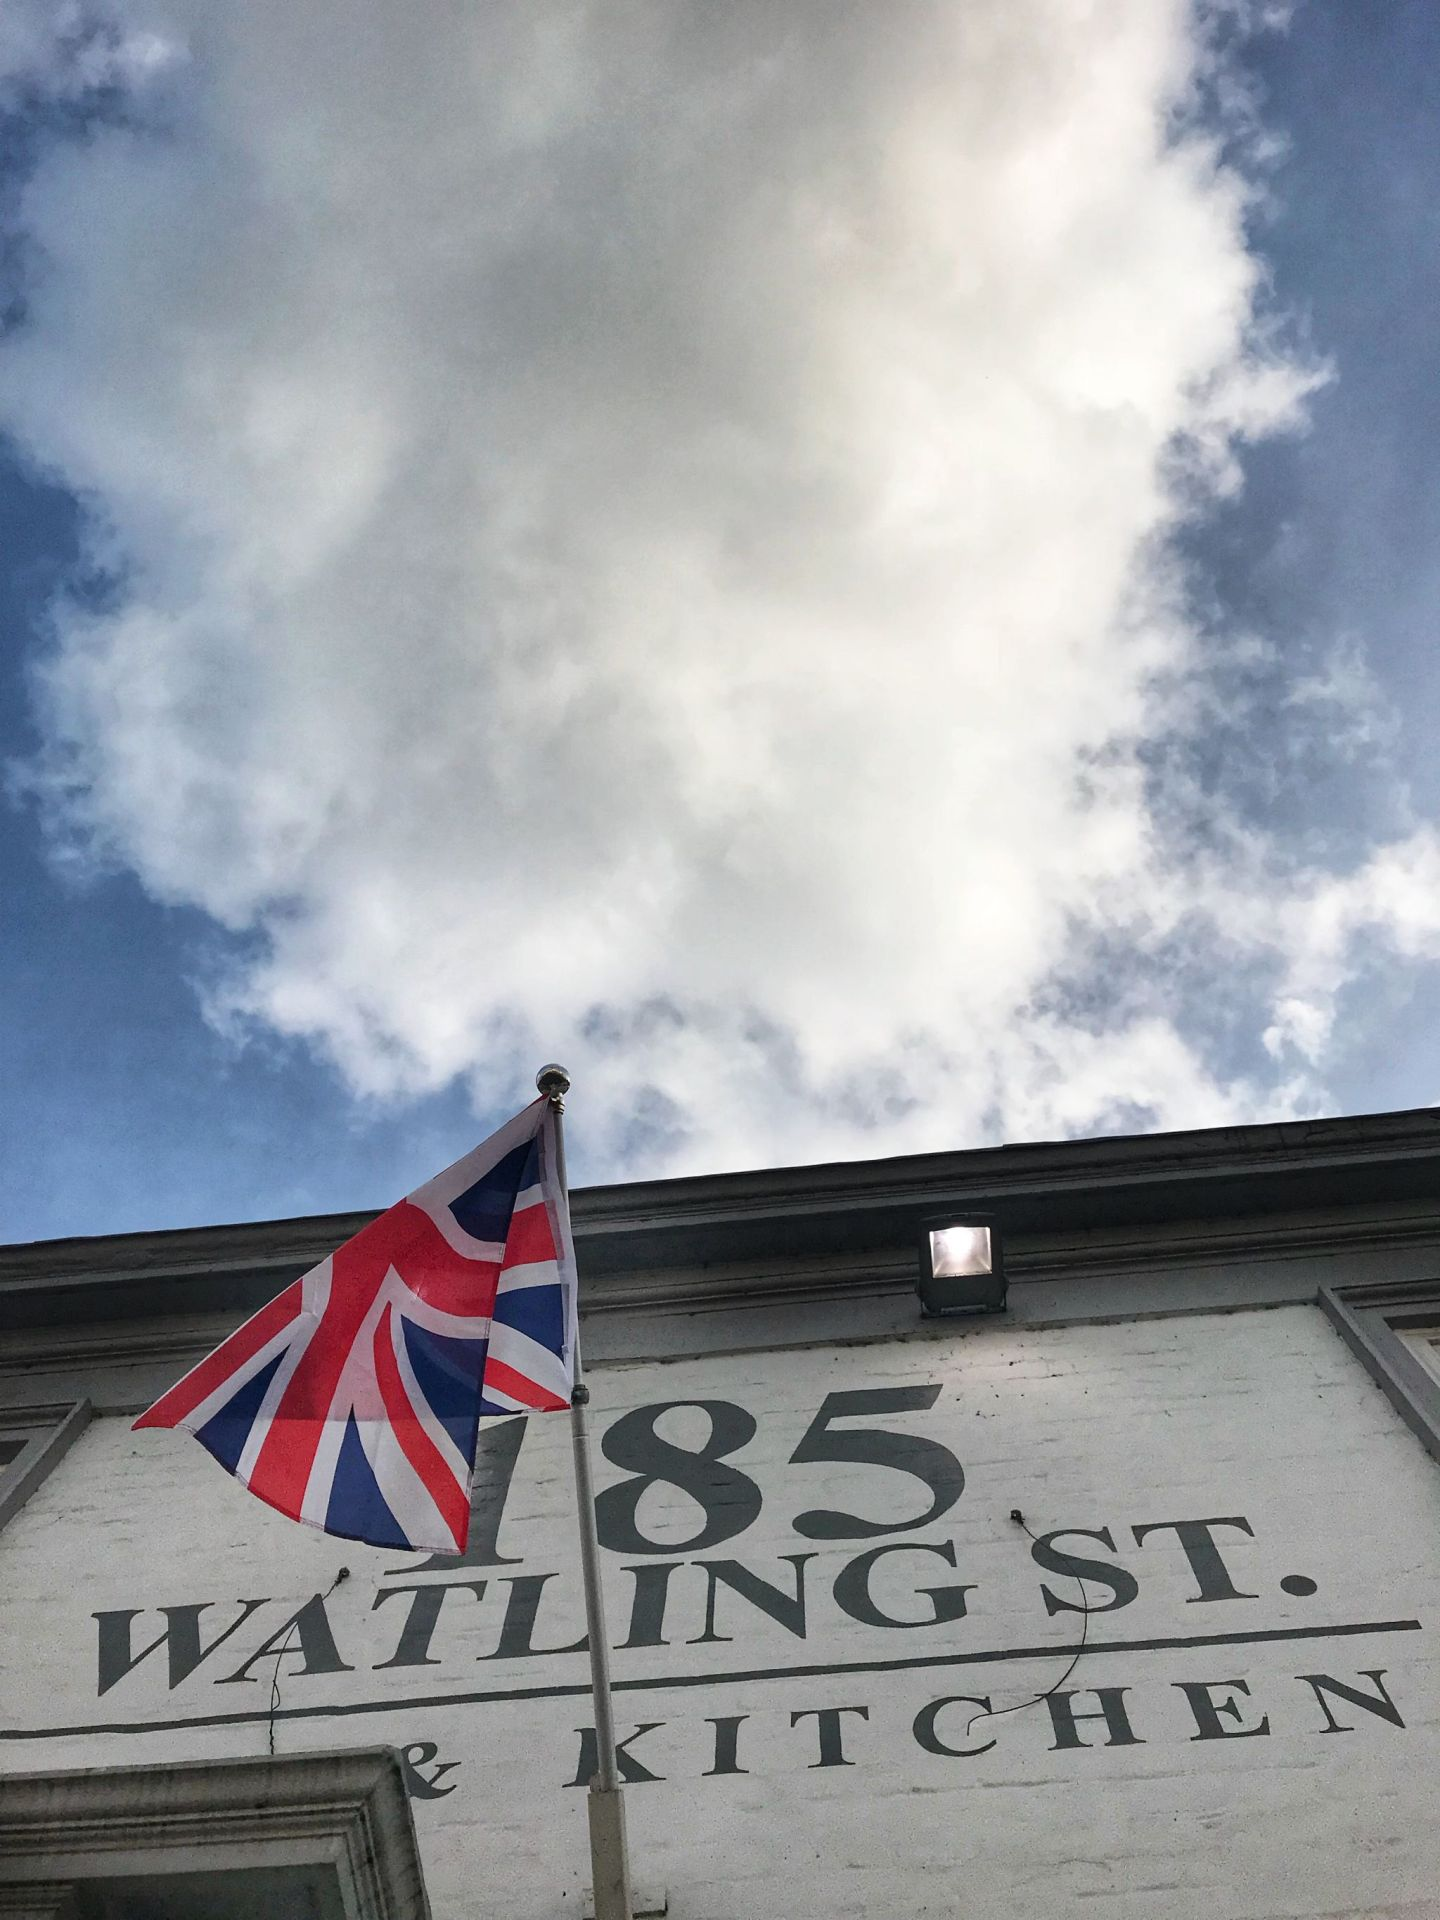 185 Watling St British Union Jack